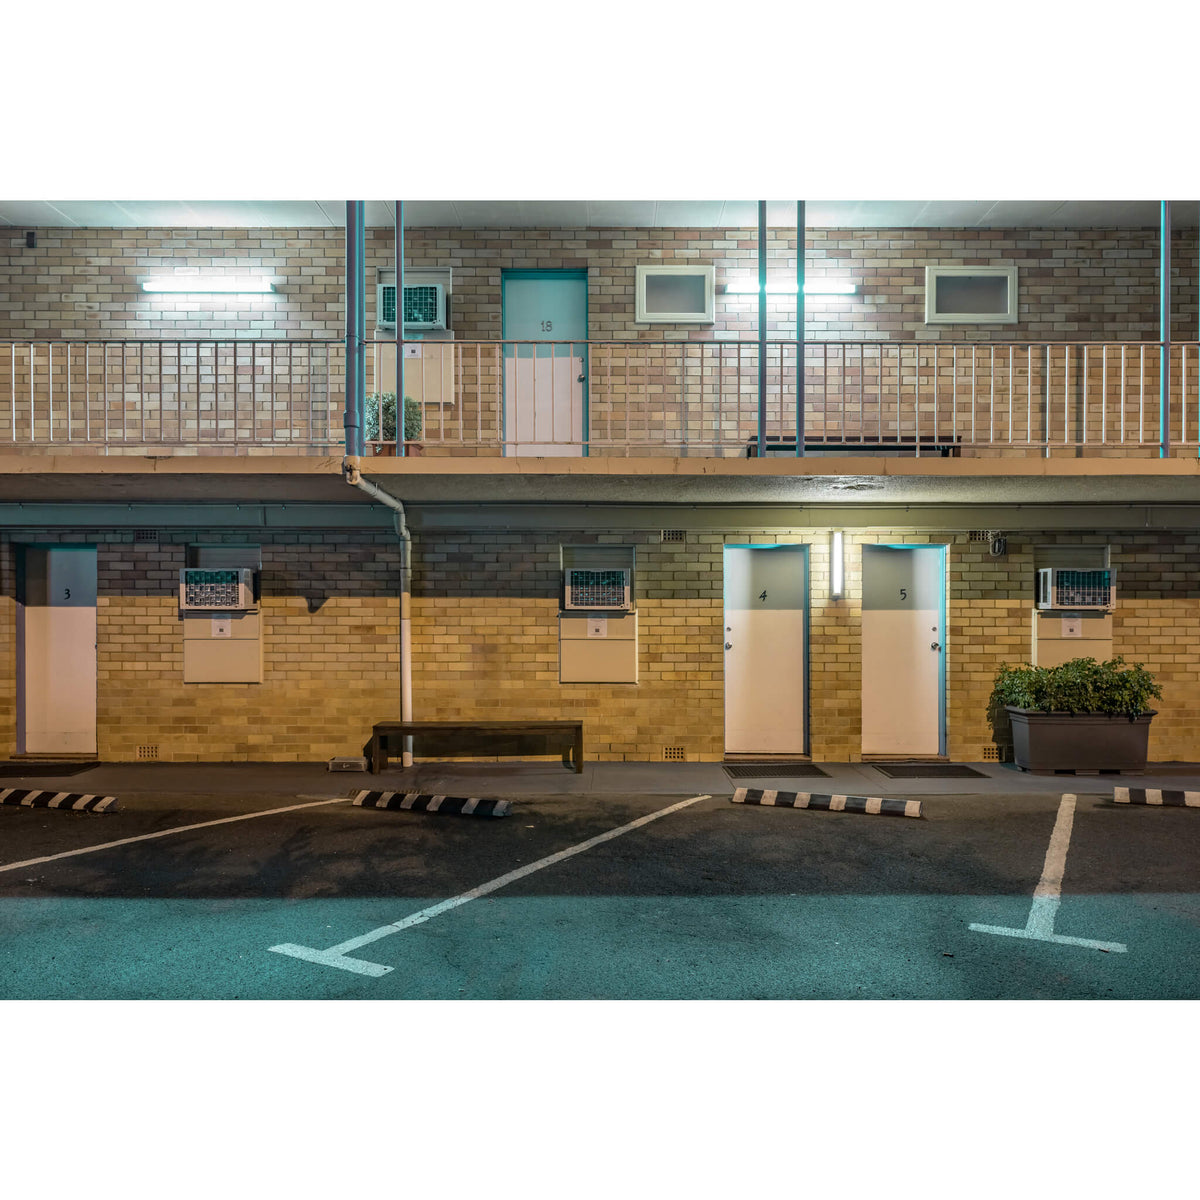 Blue Mountains Gday Motel | Hotel Motel 101